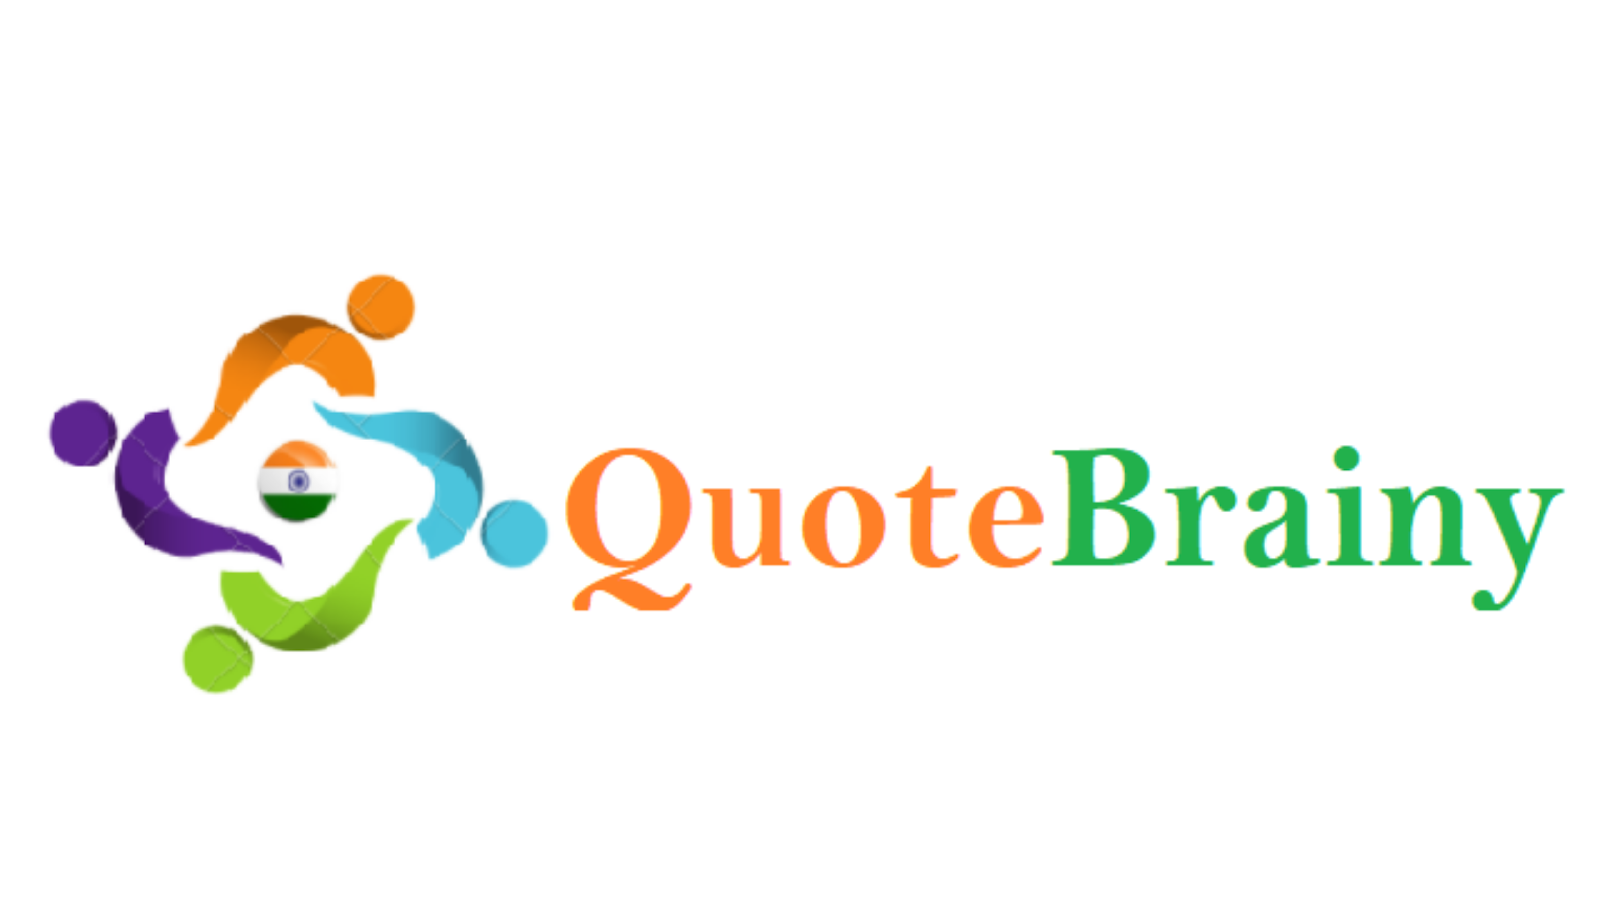 Quote Brainy